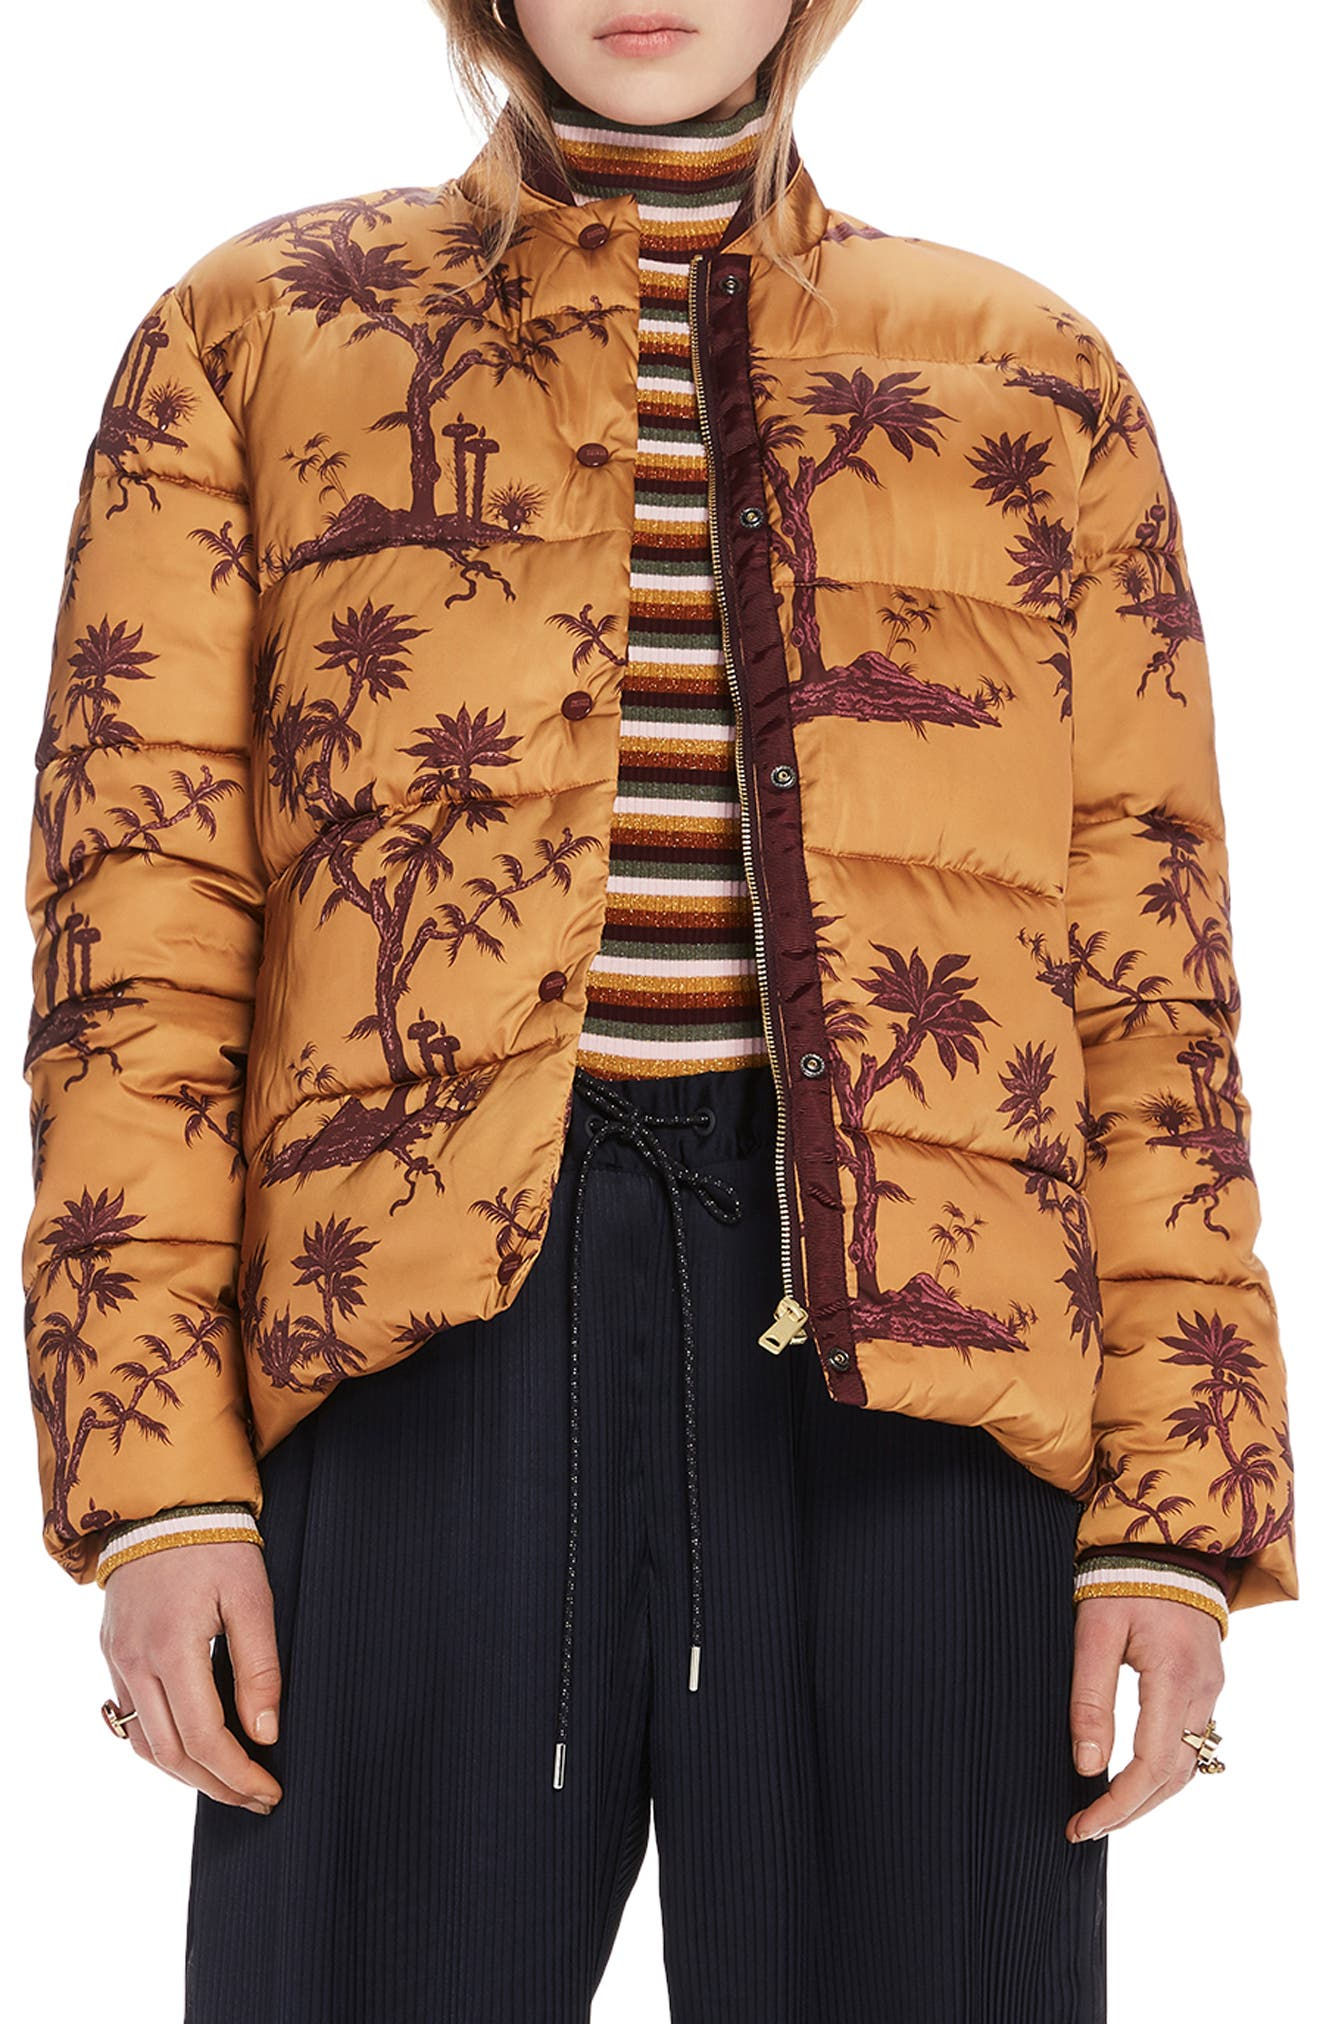 Print Insulated Jacket,                             Main thumbnail 1, color,                             MULTI PRINT OCHRE PLANT SCAPE